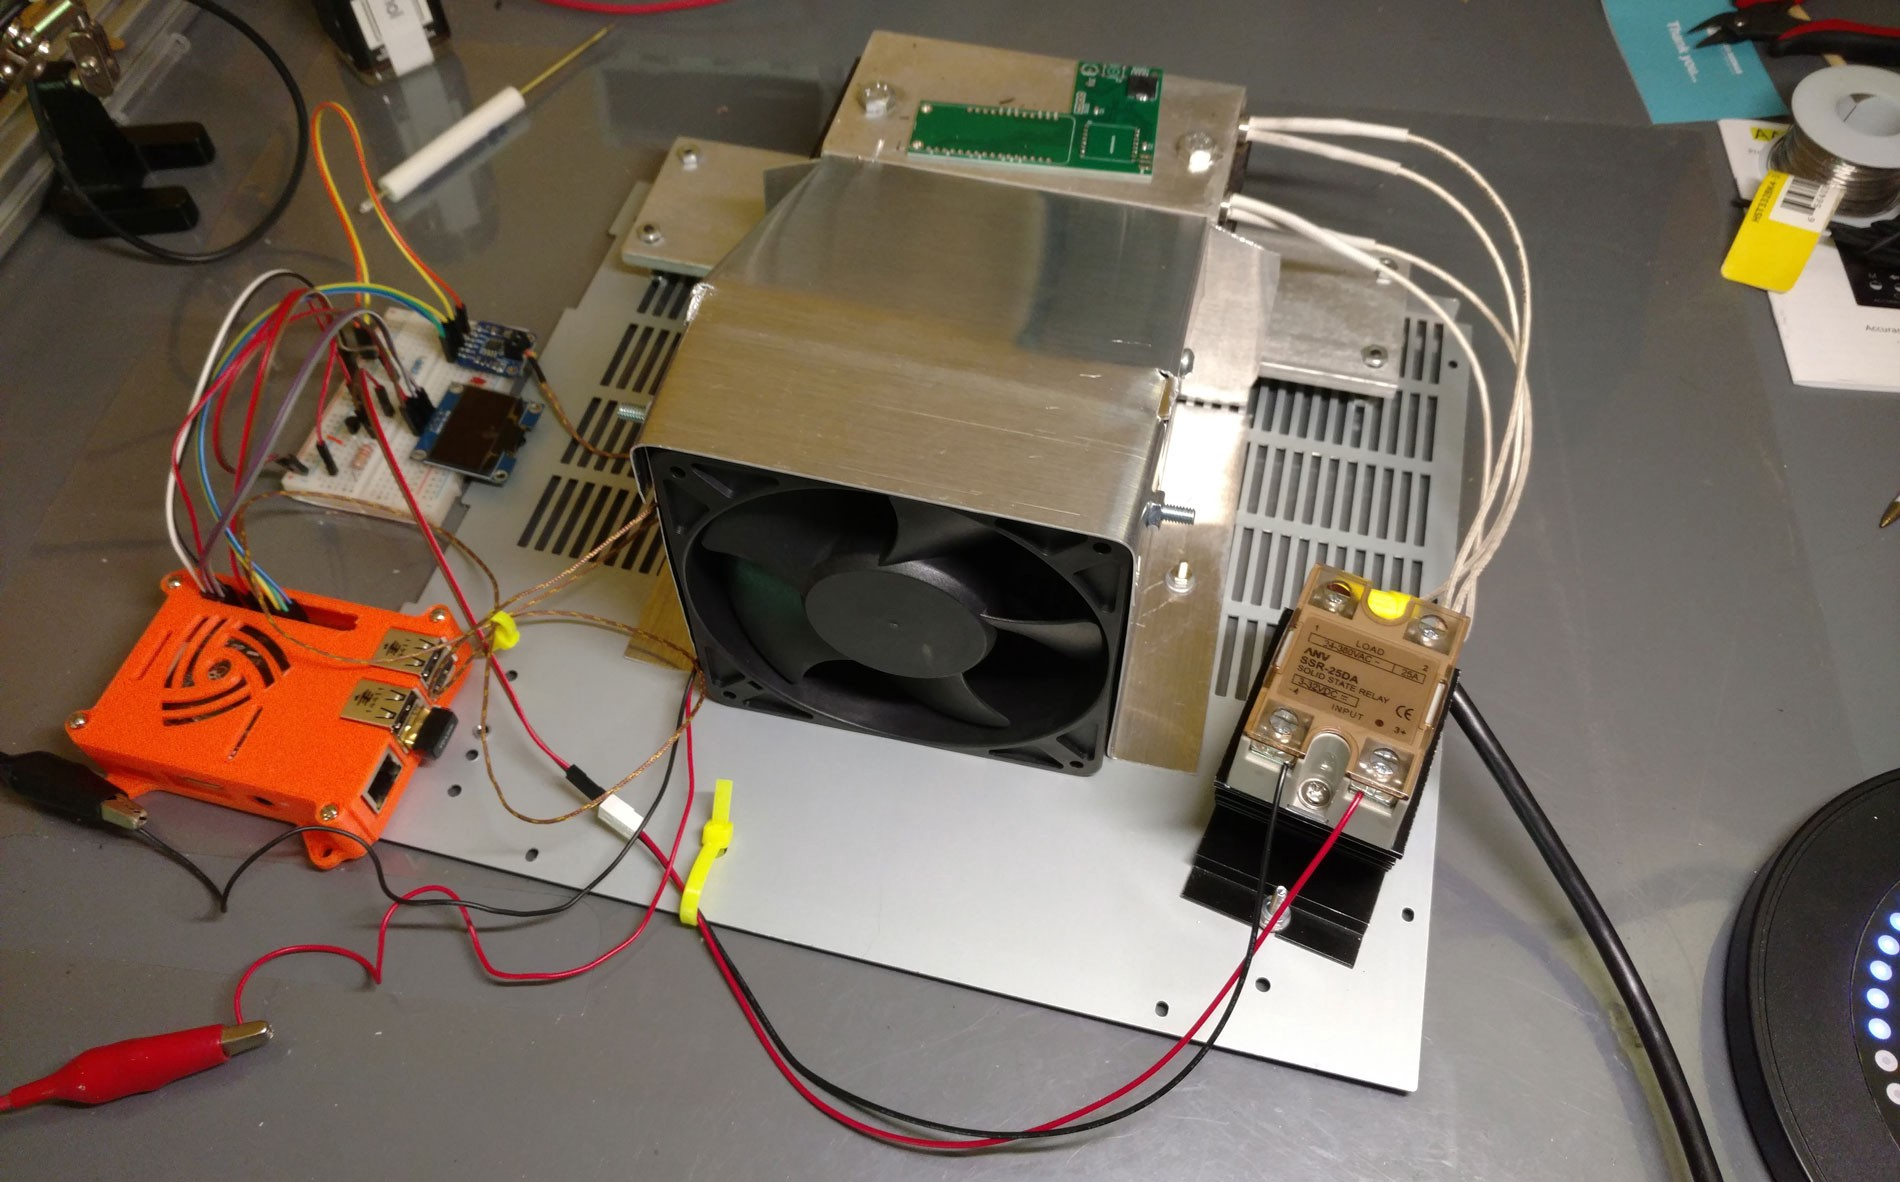 How to Build a Hot Plate Reflow Oven - Home Wireless - Medium